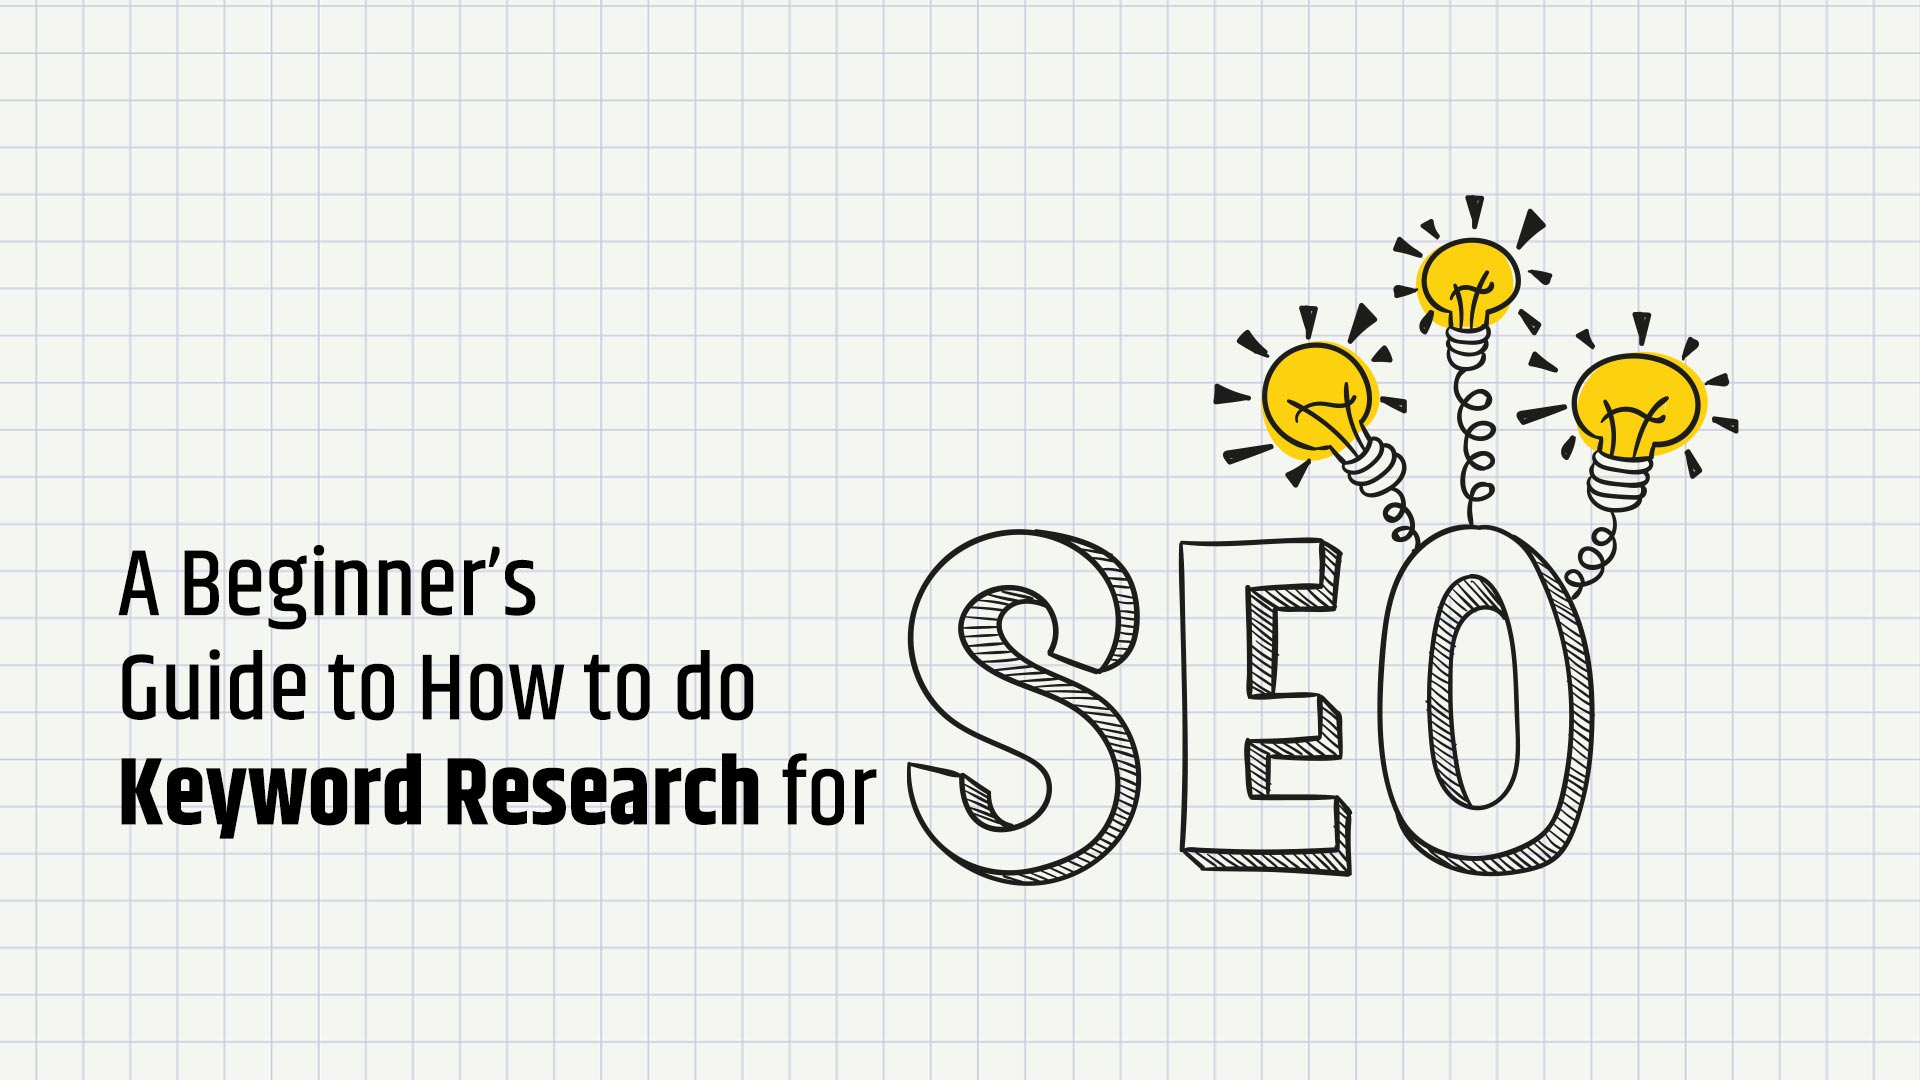 A Beginner's Guide to How to do Keyword Research for SEO